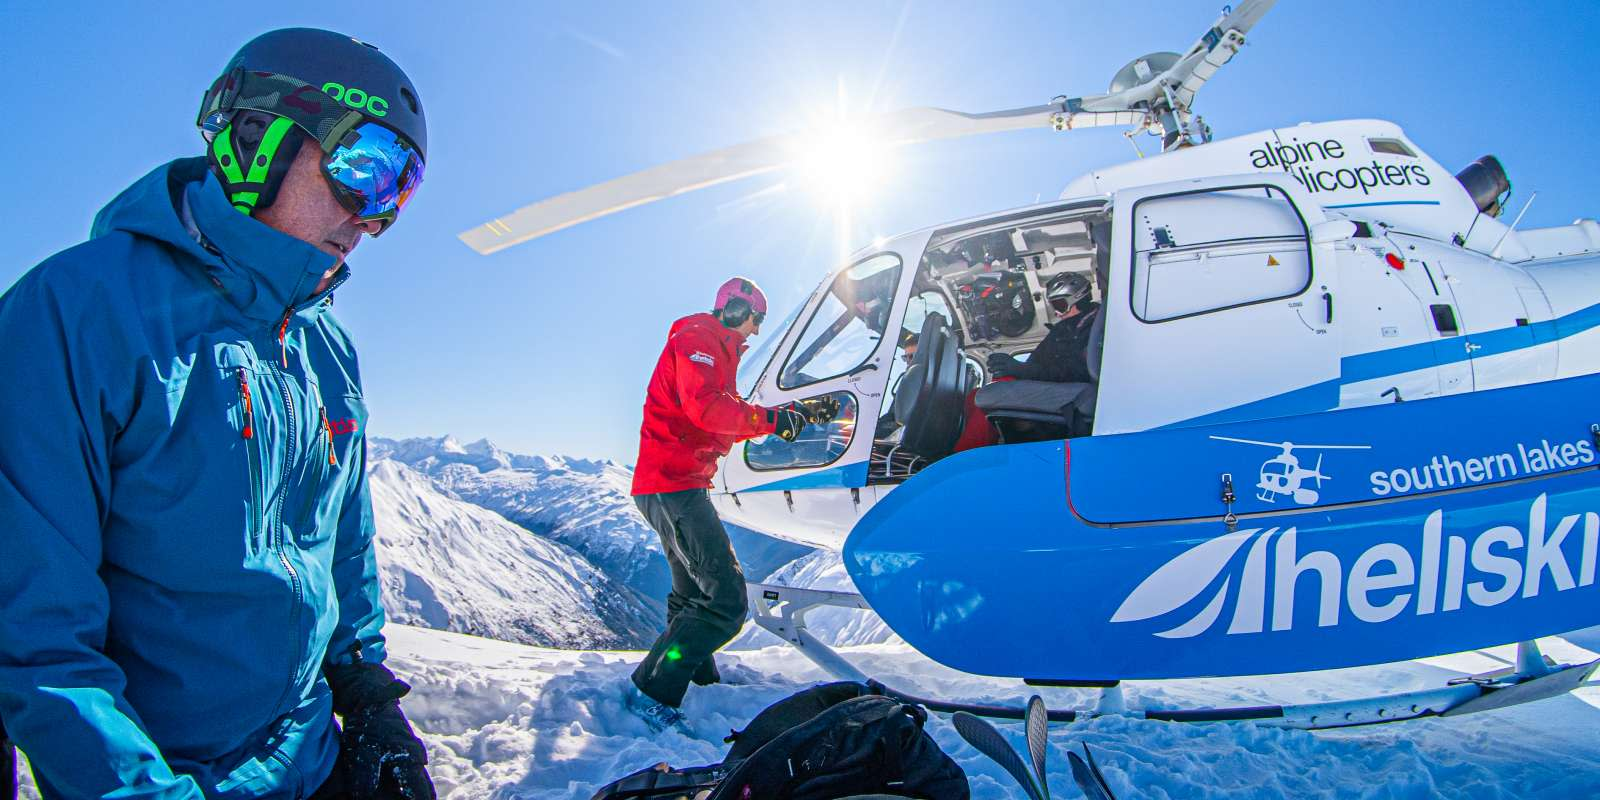 Heli Skiing with Southern Lakes Heliski